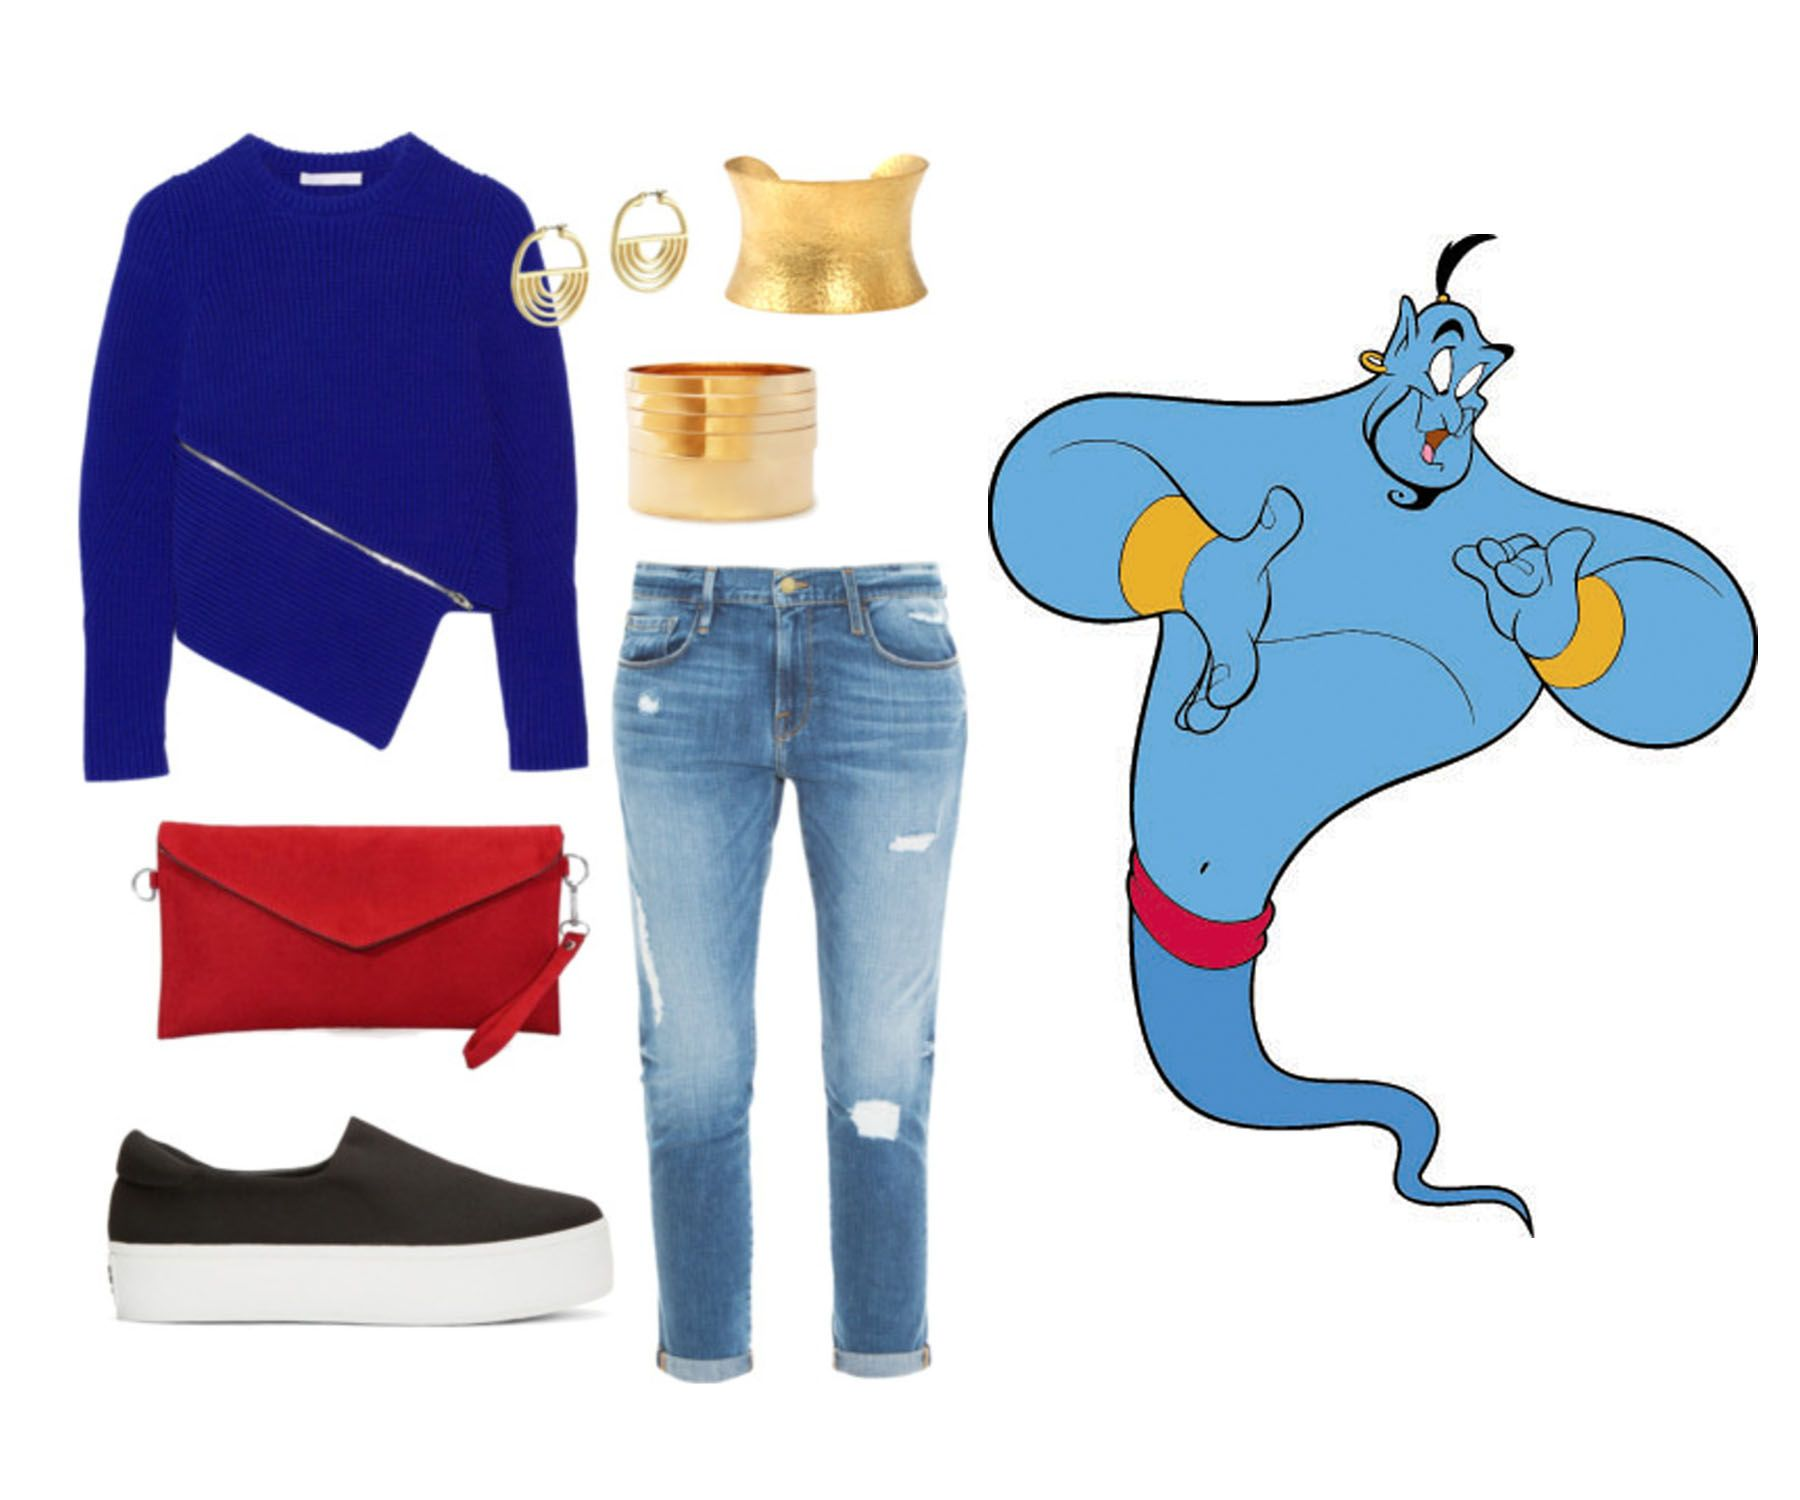 fb33397298f1 7 Signs You re Probably Dressing Like a Disney Character   Fashion   Disney  Style